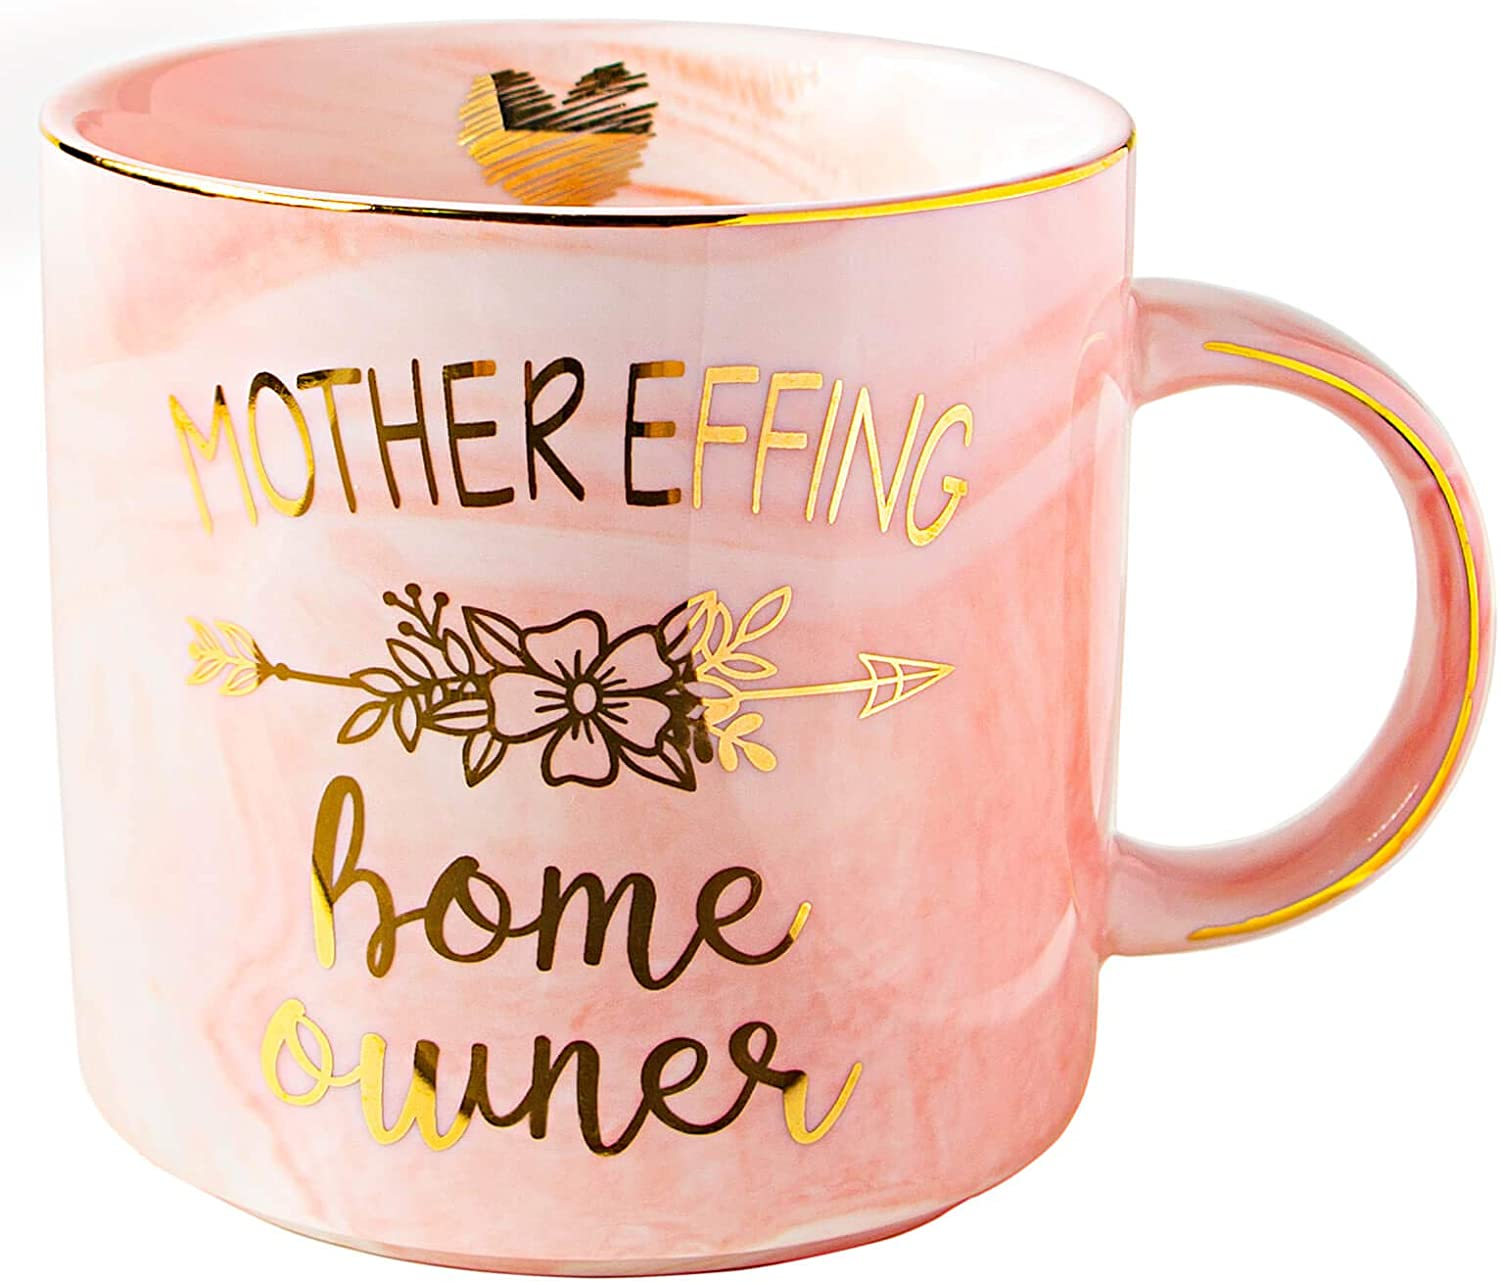 Funny House Warming 11oz Novelty Gift Idea Cup For Women Mother Effin Homeowner Coffee Mug Friend Home Decor Men MyCozyCups New Homeowner Gifts Decoration New First Time Home Owner Present